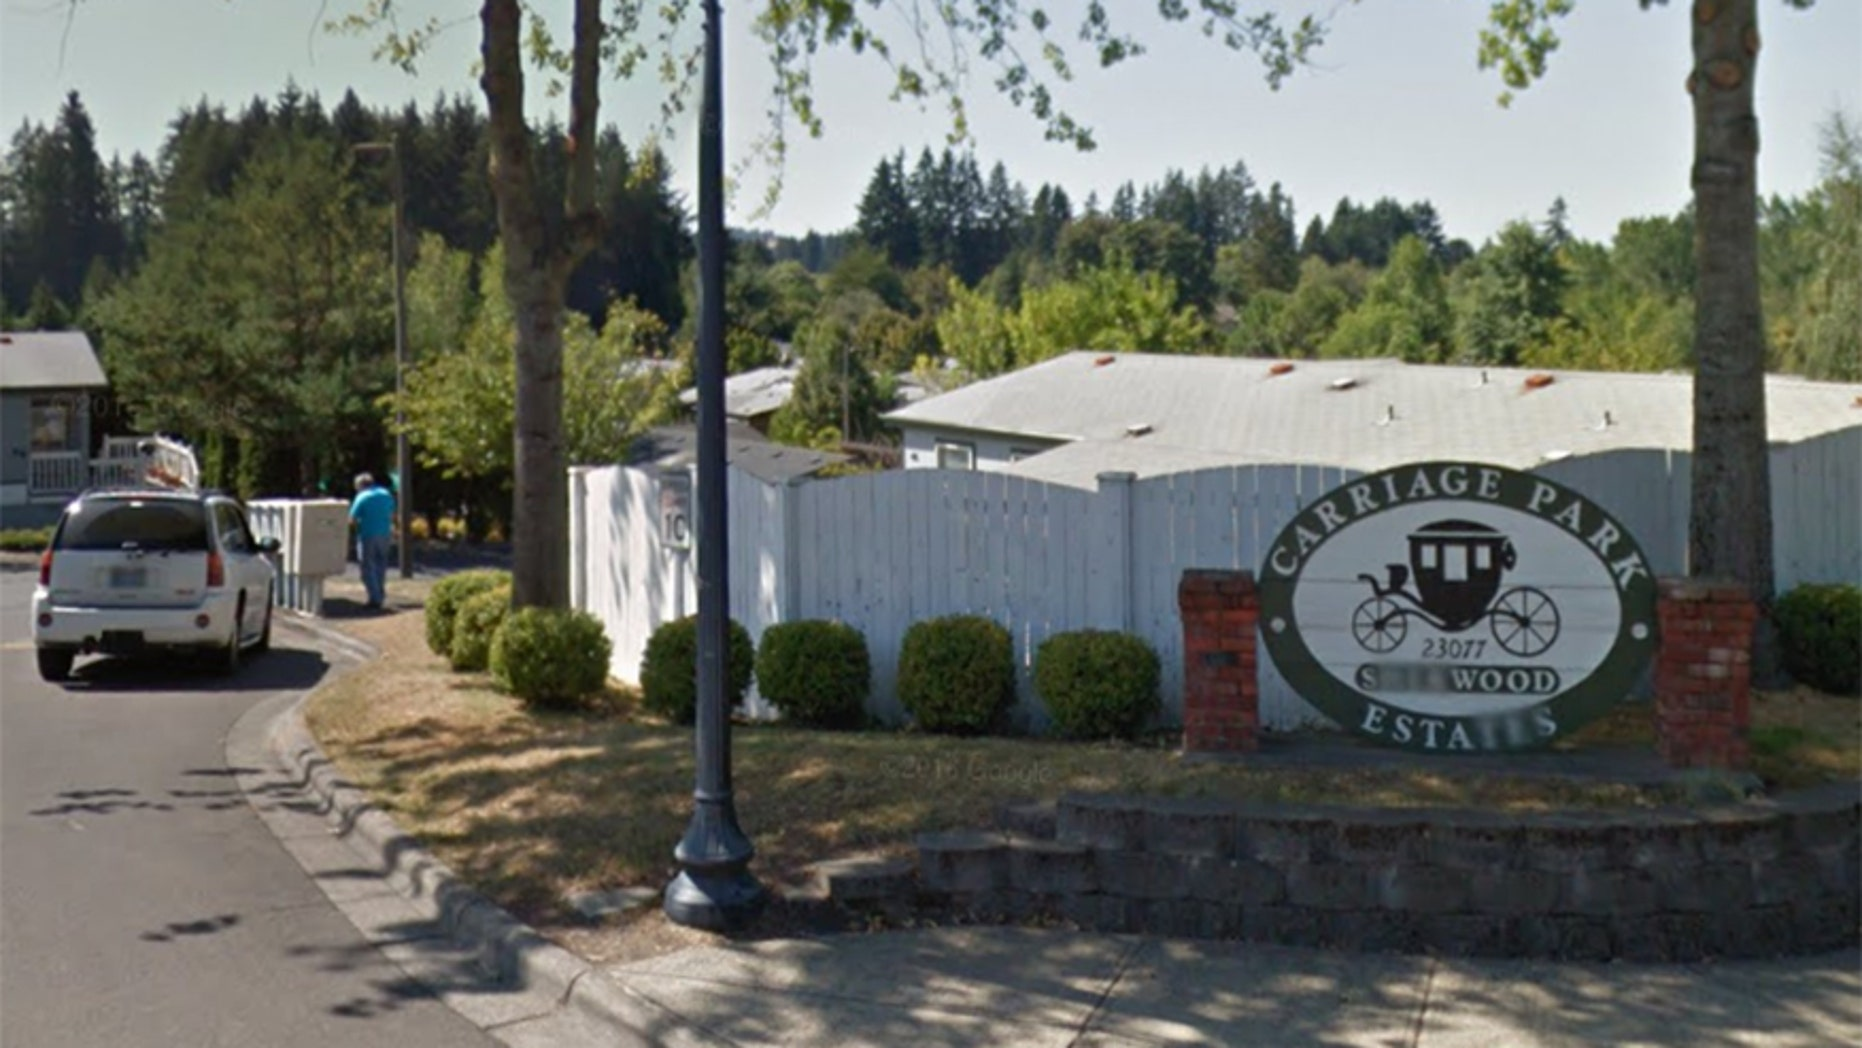 The Carriage Park Estates mobile home community in Sherwood, Ore.